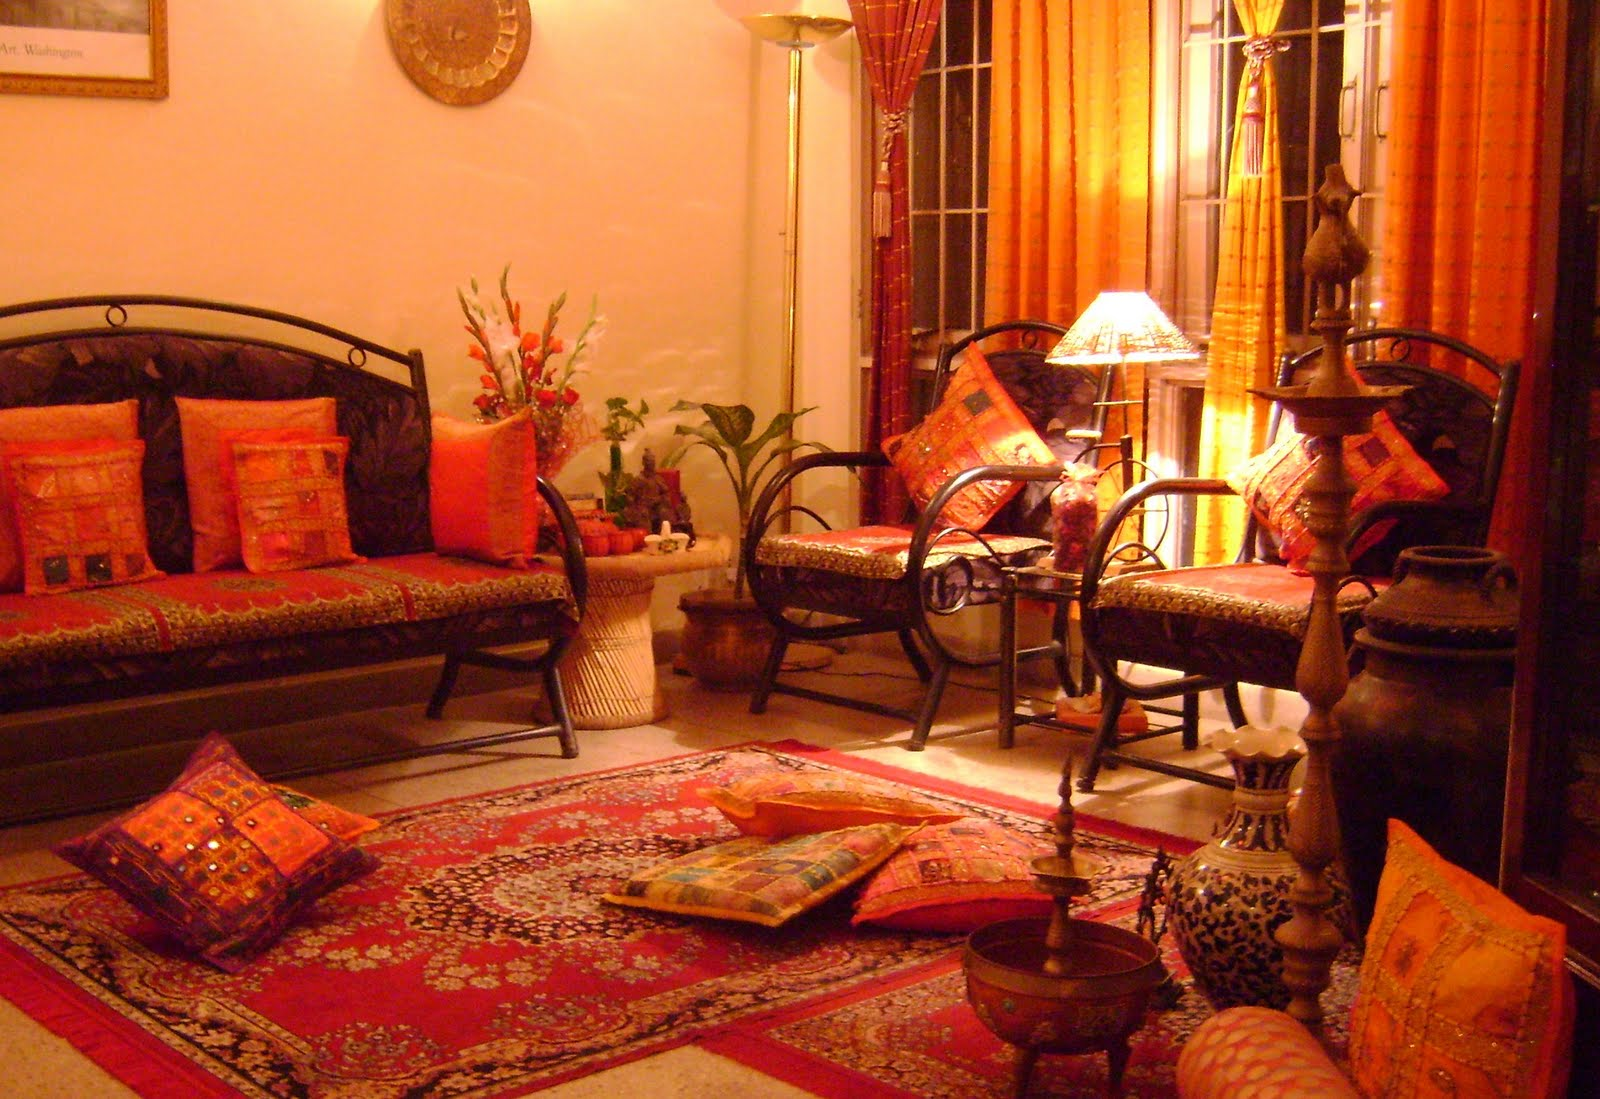 Ethnic Indian Decor & Ethnic Indian Home Decor Ideas - Elitflat